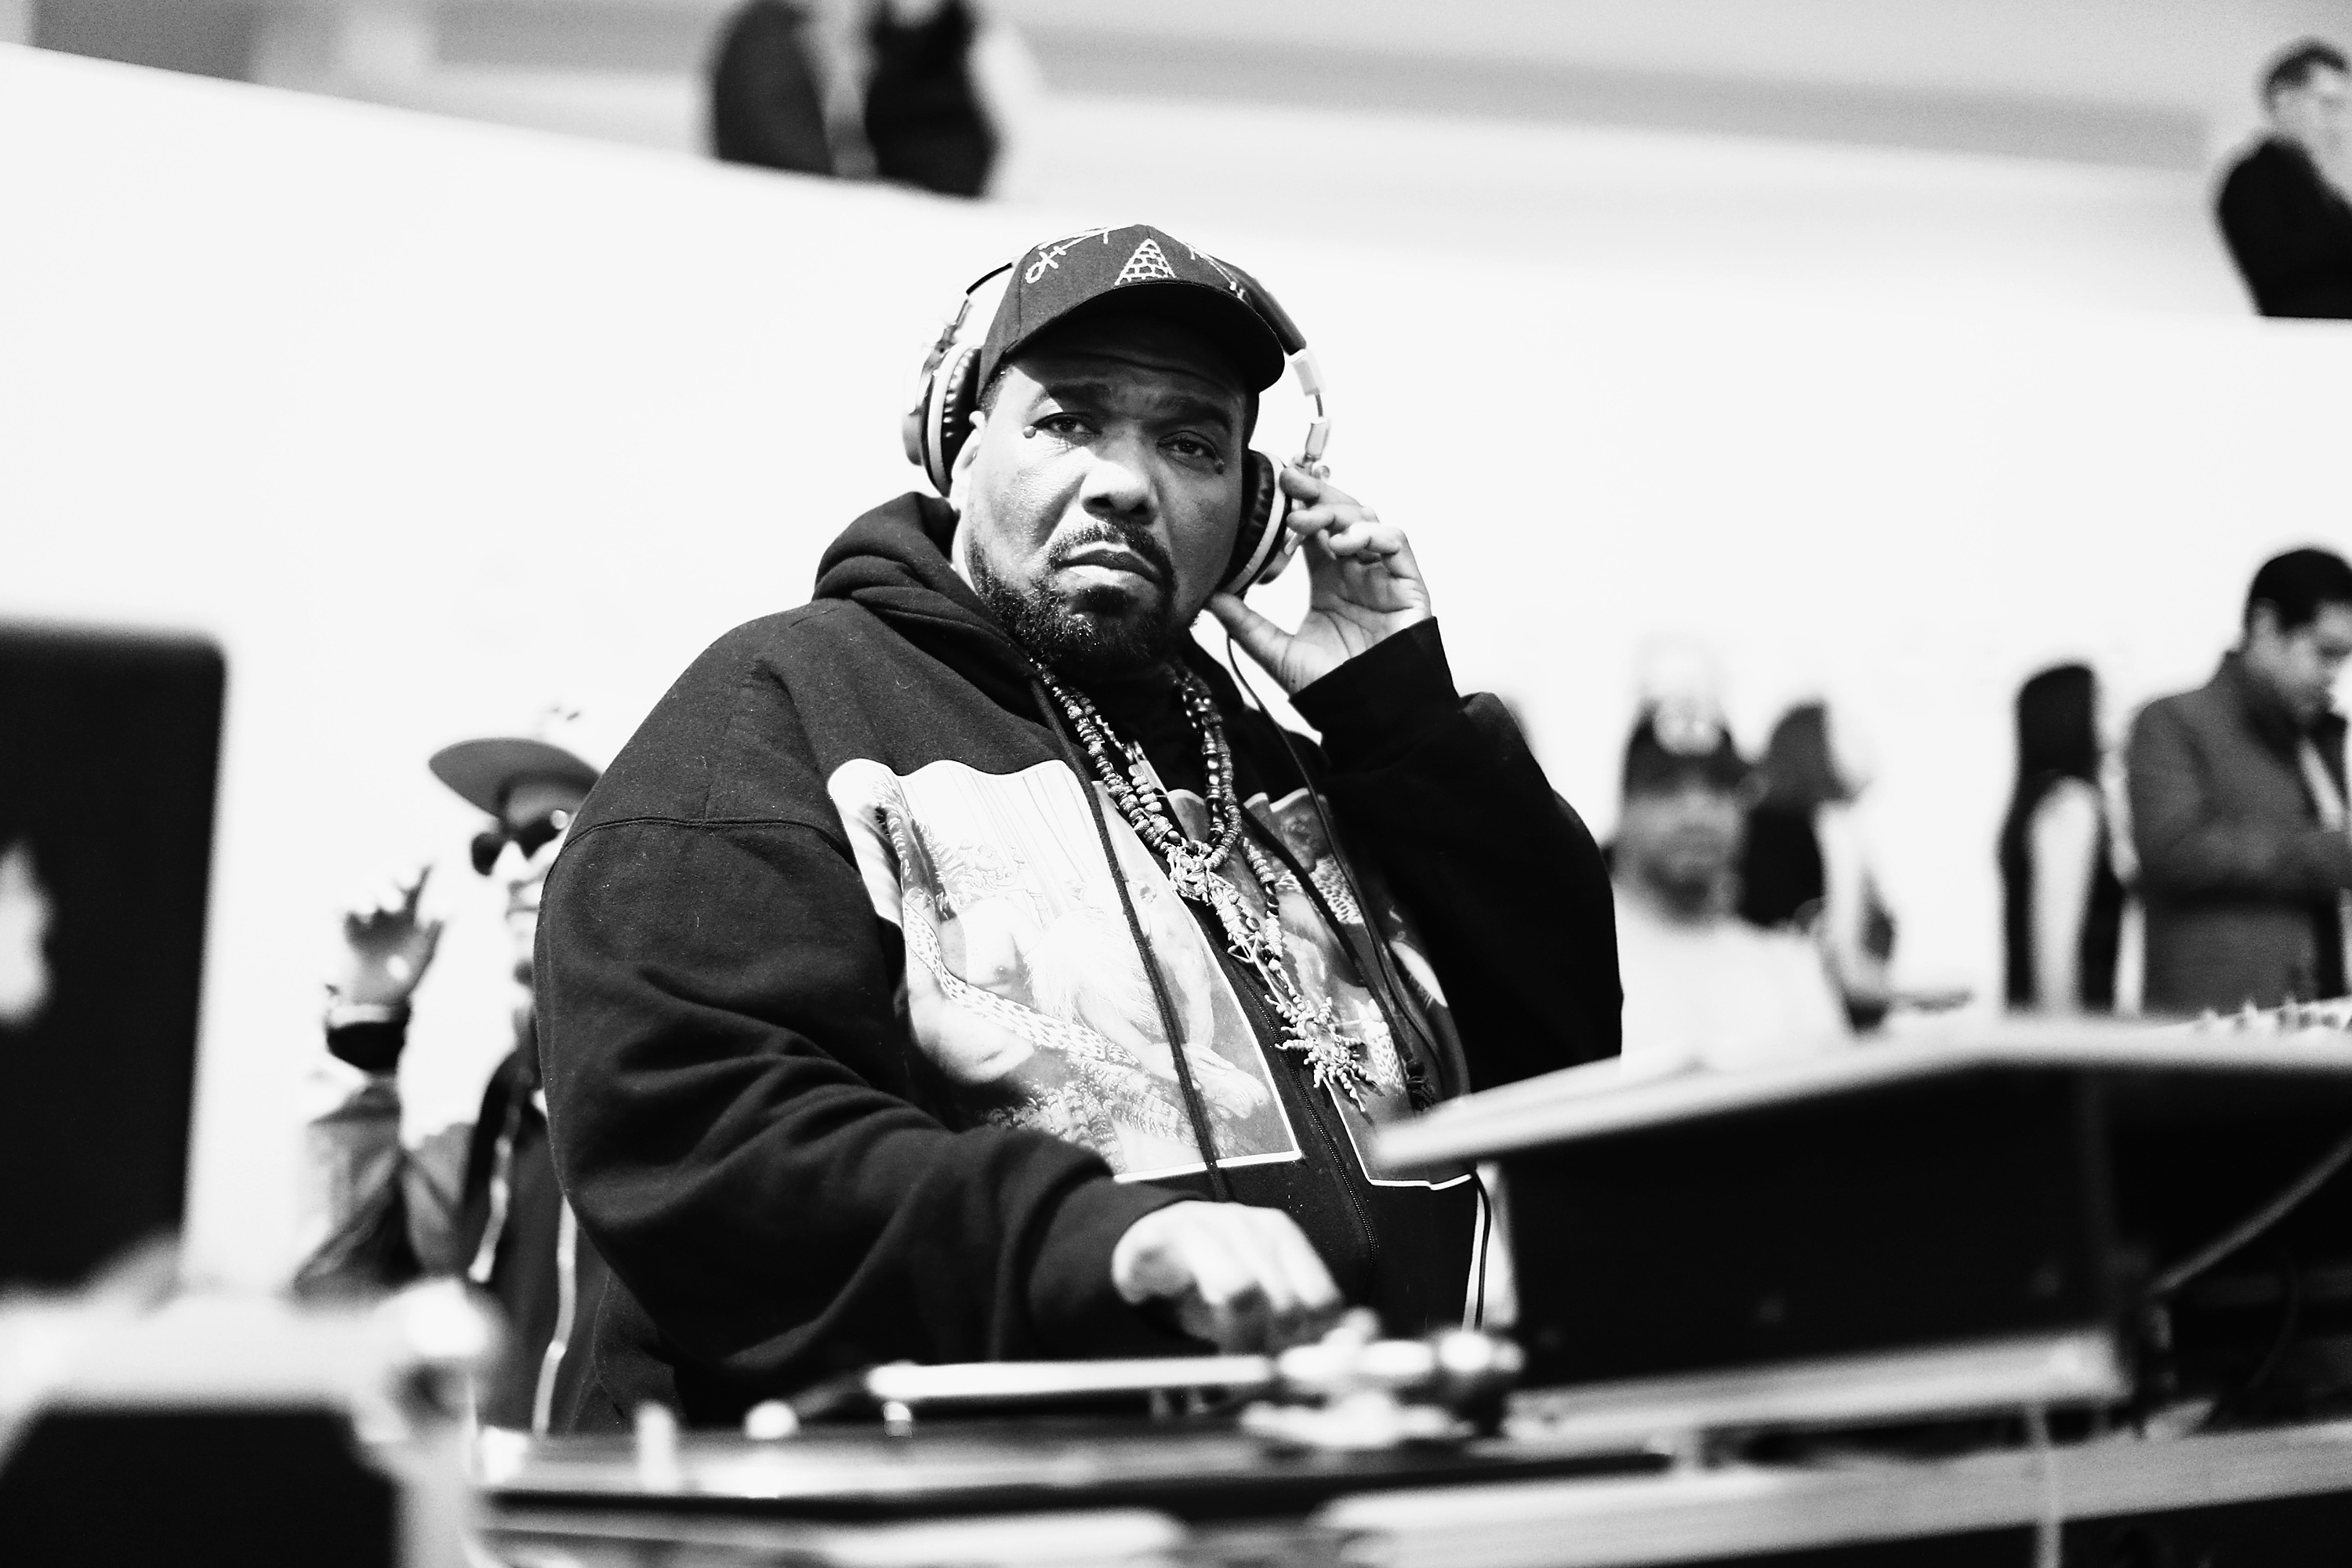 NEW YORK, NY - MARCH 19: (EDITORS NOTE: Image has been converted to black and white.) DJ Afrika Bambaataa performs during the 2015 Guggenheim Young Collectors party supported by David Yurman at Guggenheim Museum on March 19, 2015 in New York City. (Photo by Neilson Barnard/Getty Images for David Yurman)